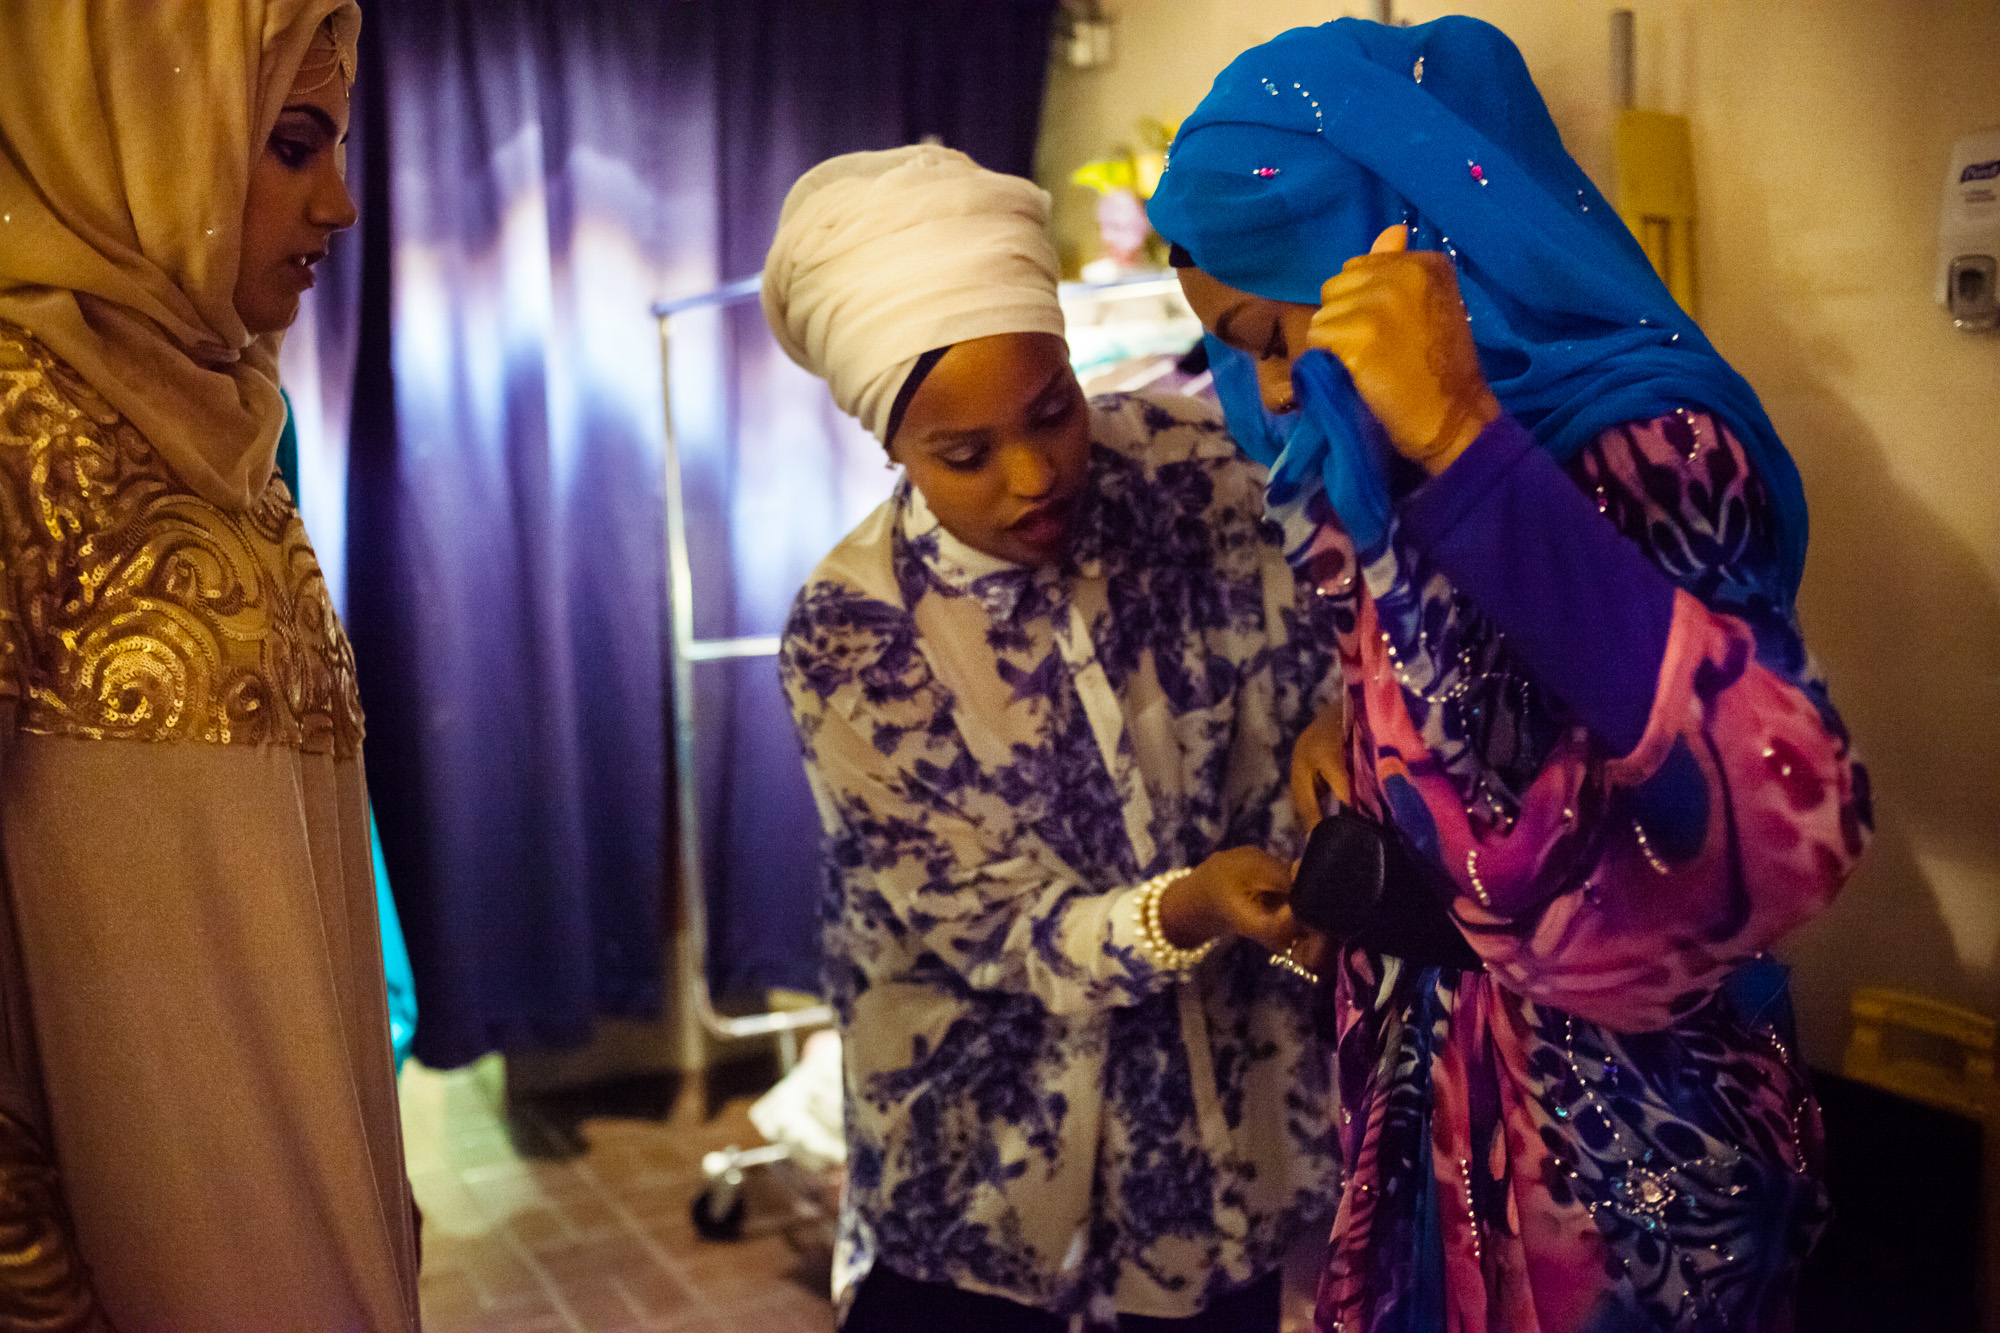 Fahima Abdul, designer. Reaching All HIV+ Muslims in America (RAHMA) hosted a fashion show in Washington, DC on Aug. 16, 2014. The clothing and accessories are all made by Muslim women designers from around the US. They specialize in creating modest fashion that complies with Islamic tradition.